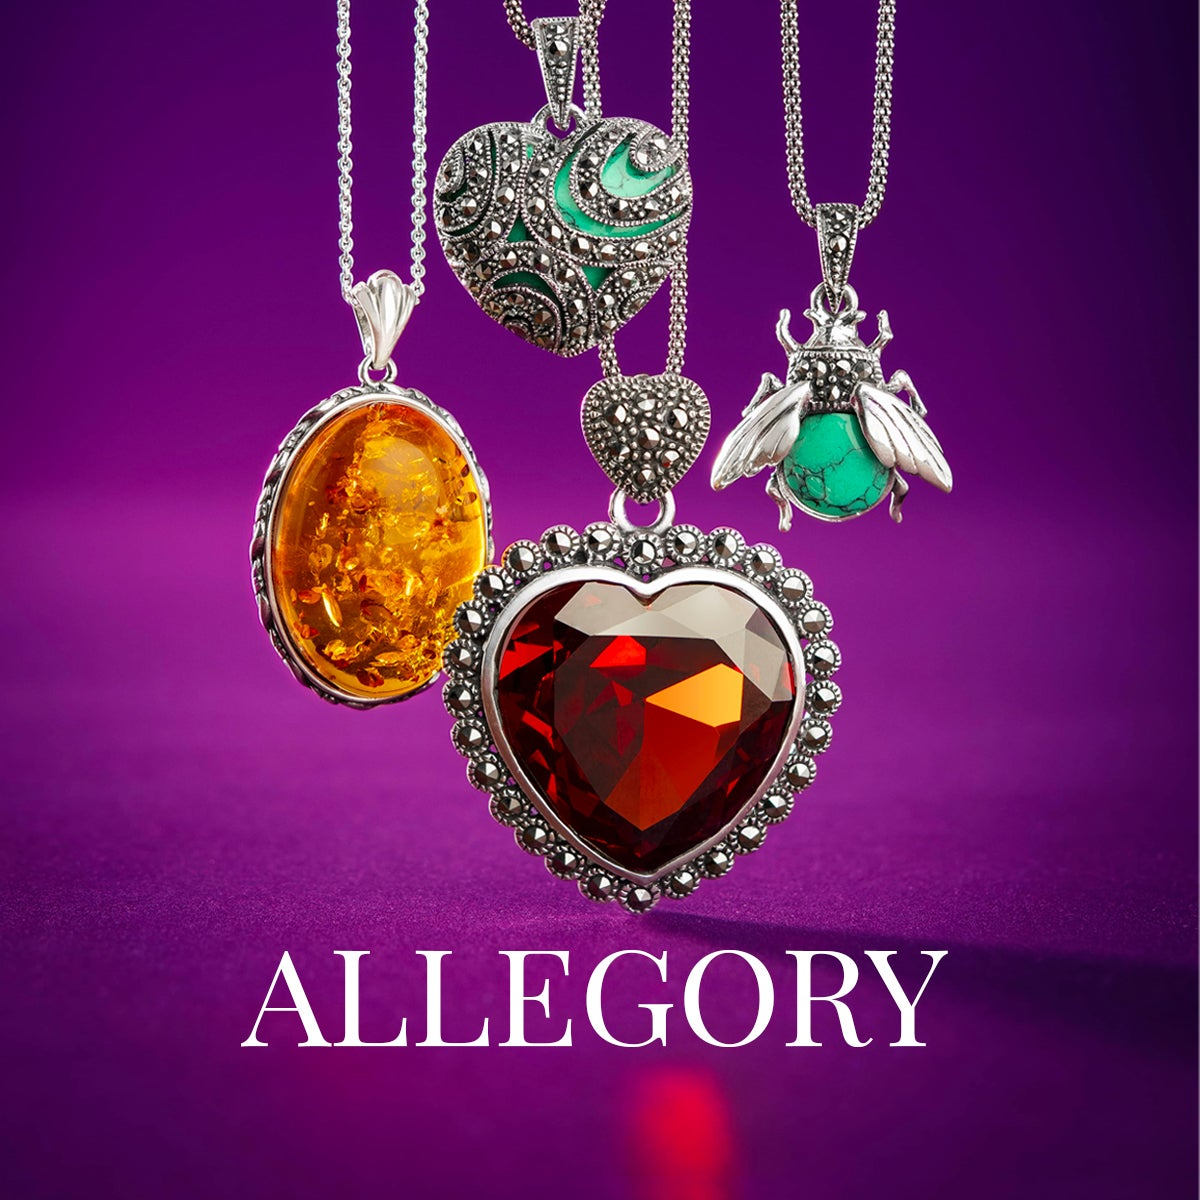 15% off Allegory